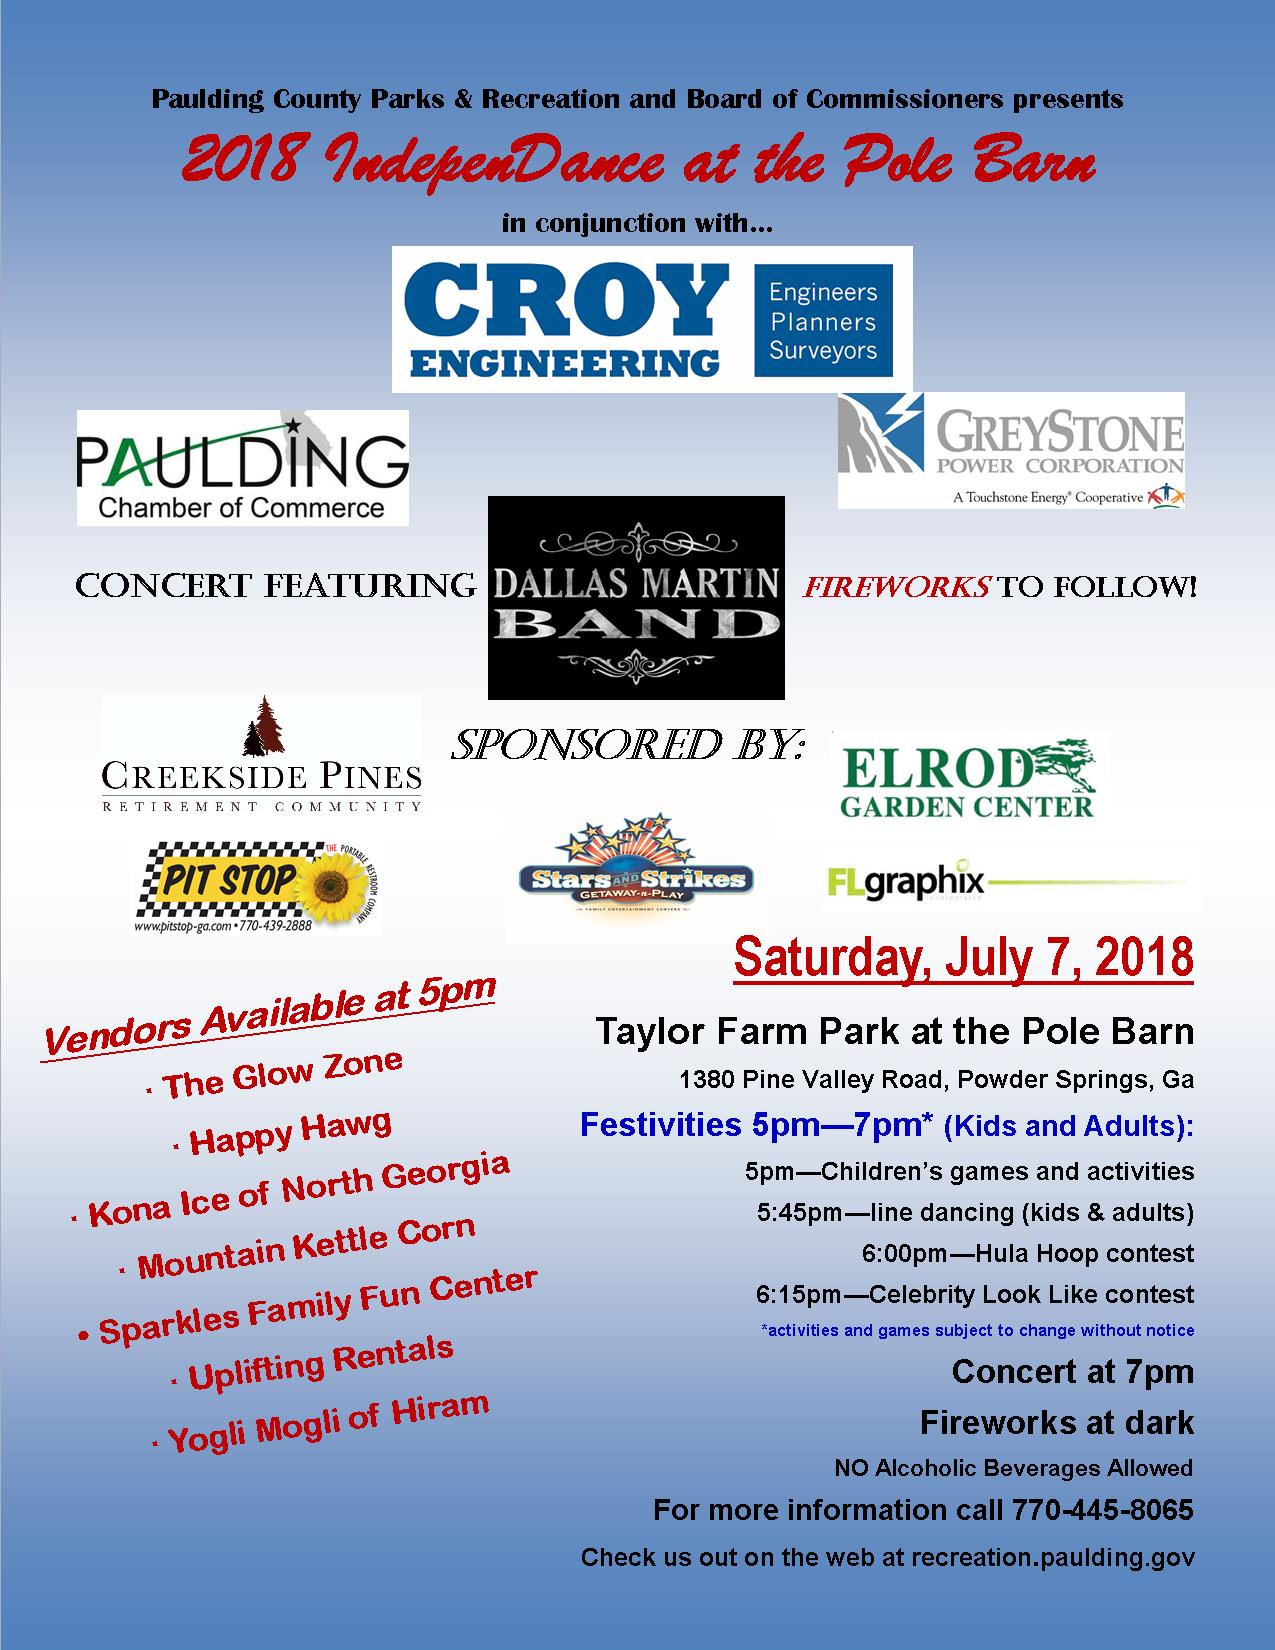 Pcprd Independance Fireworks Event Paulding County Uncensored